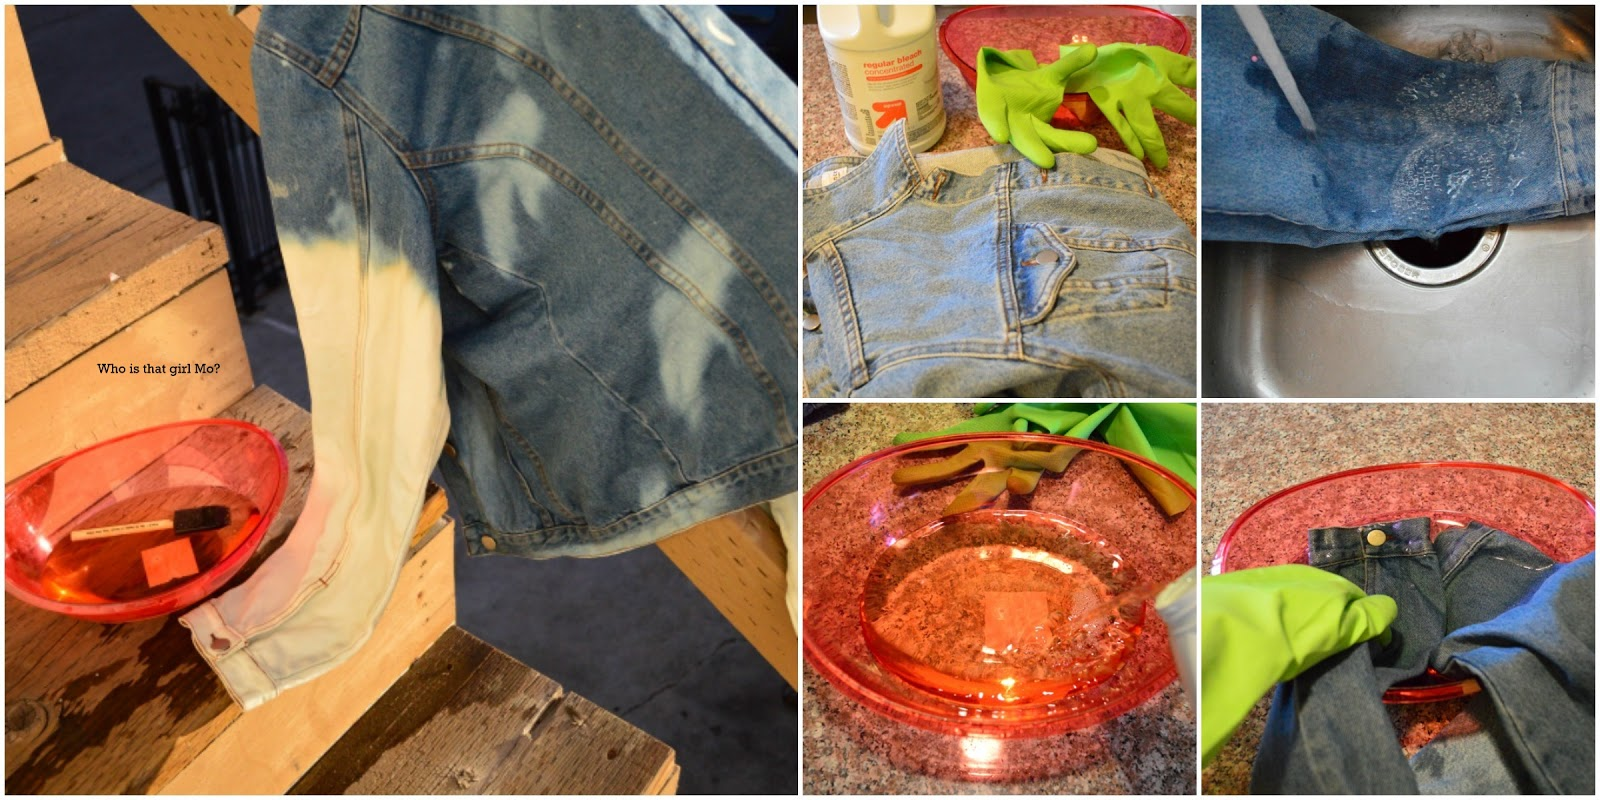 DIY bleached denim jacket tutorial pics {who is that girl mo?}